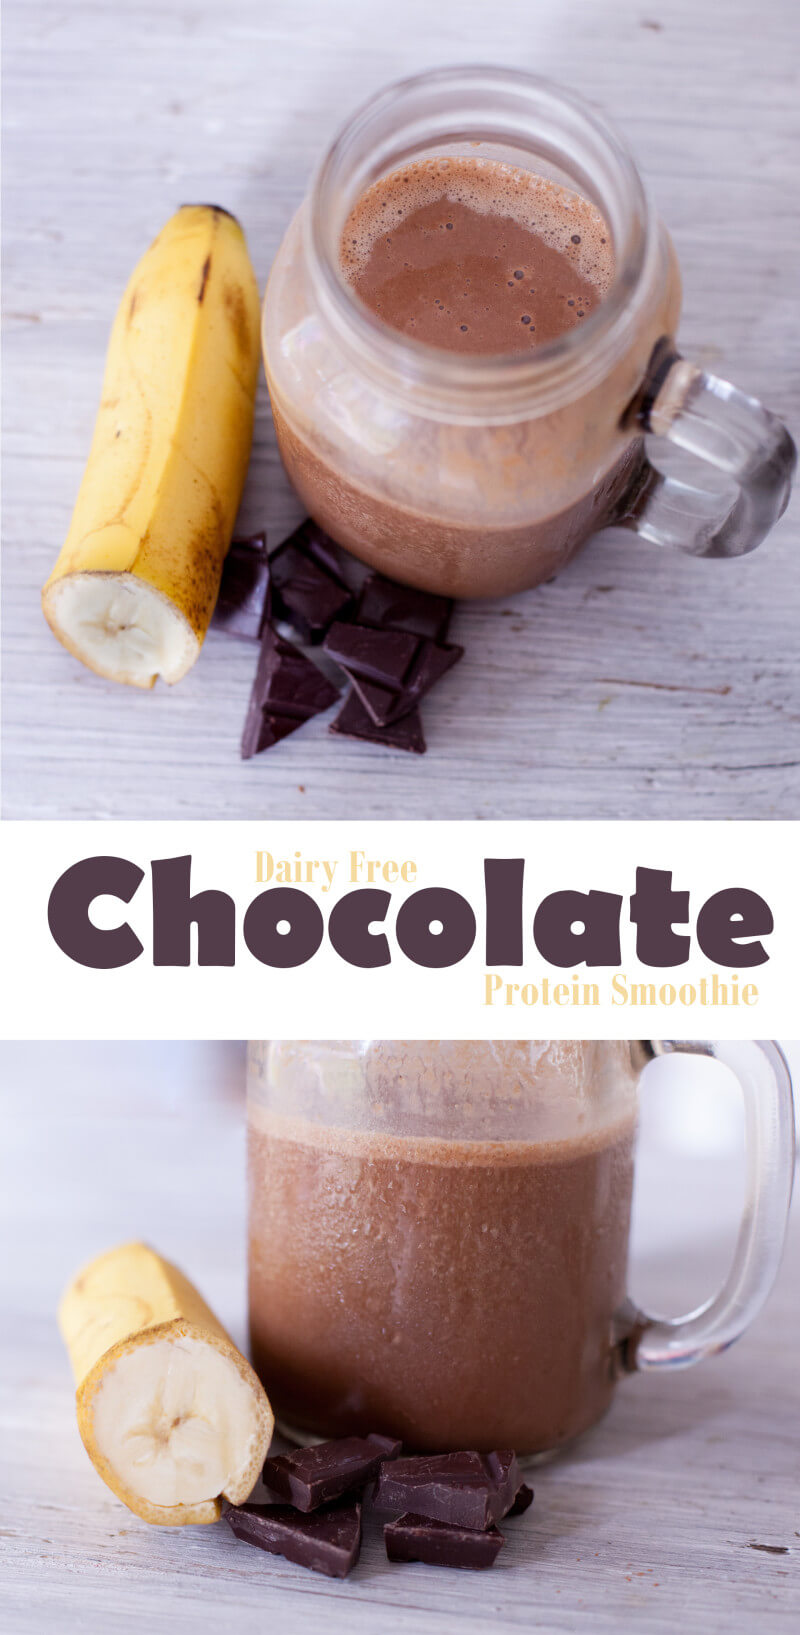 Dairy free chocolate milkshake is great for a breastfeeding mama snack!